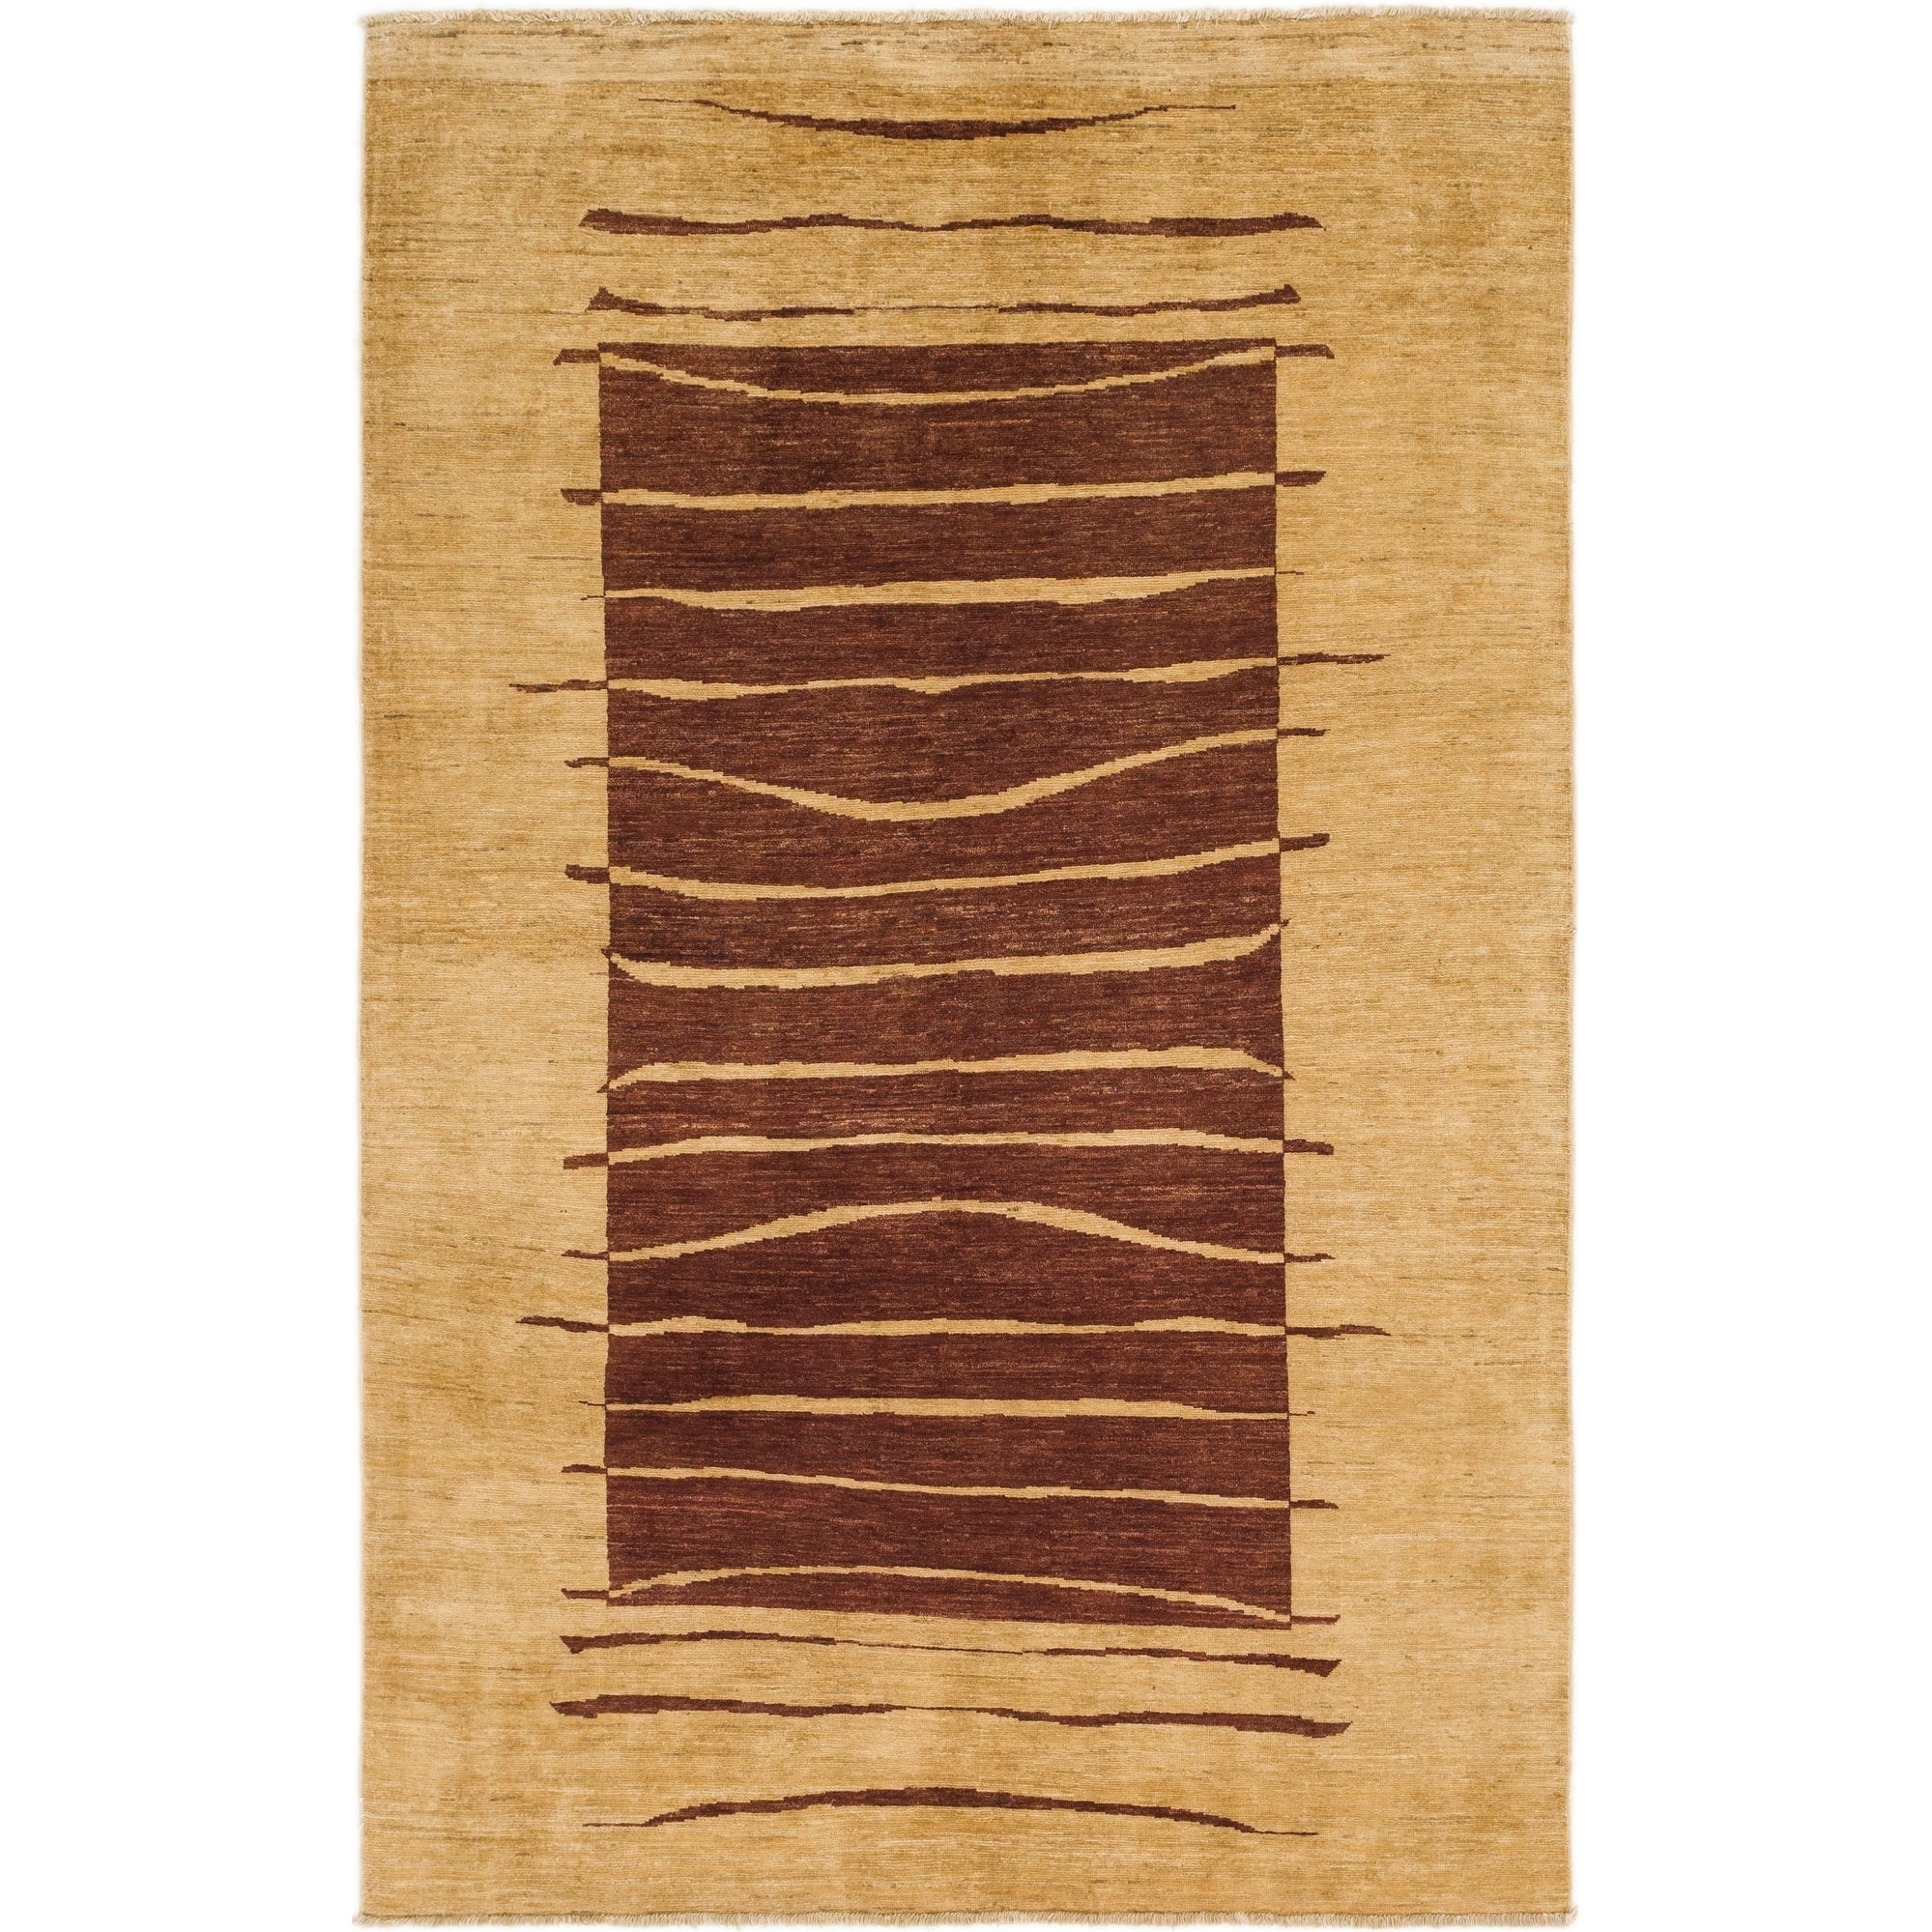 Hand Knotted Kashkuli Gabbeh Wool Area Rug - 5 10 x 9 4 (Gold - 5 10 x 9 4)